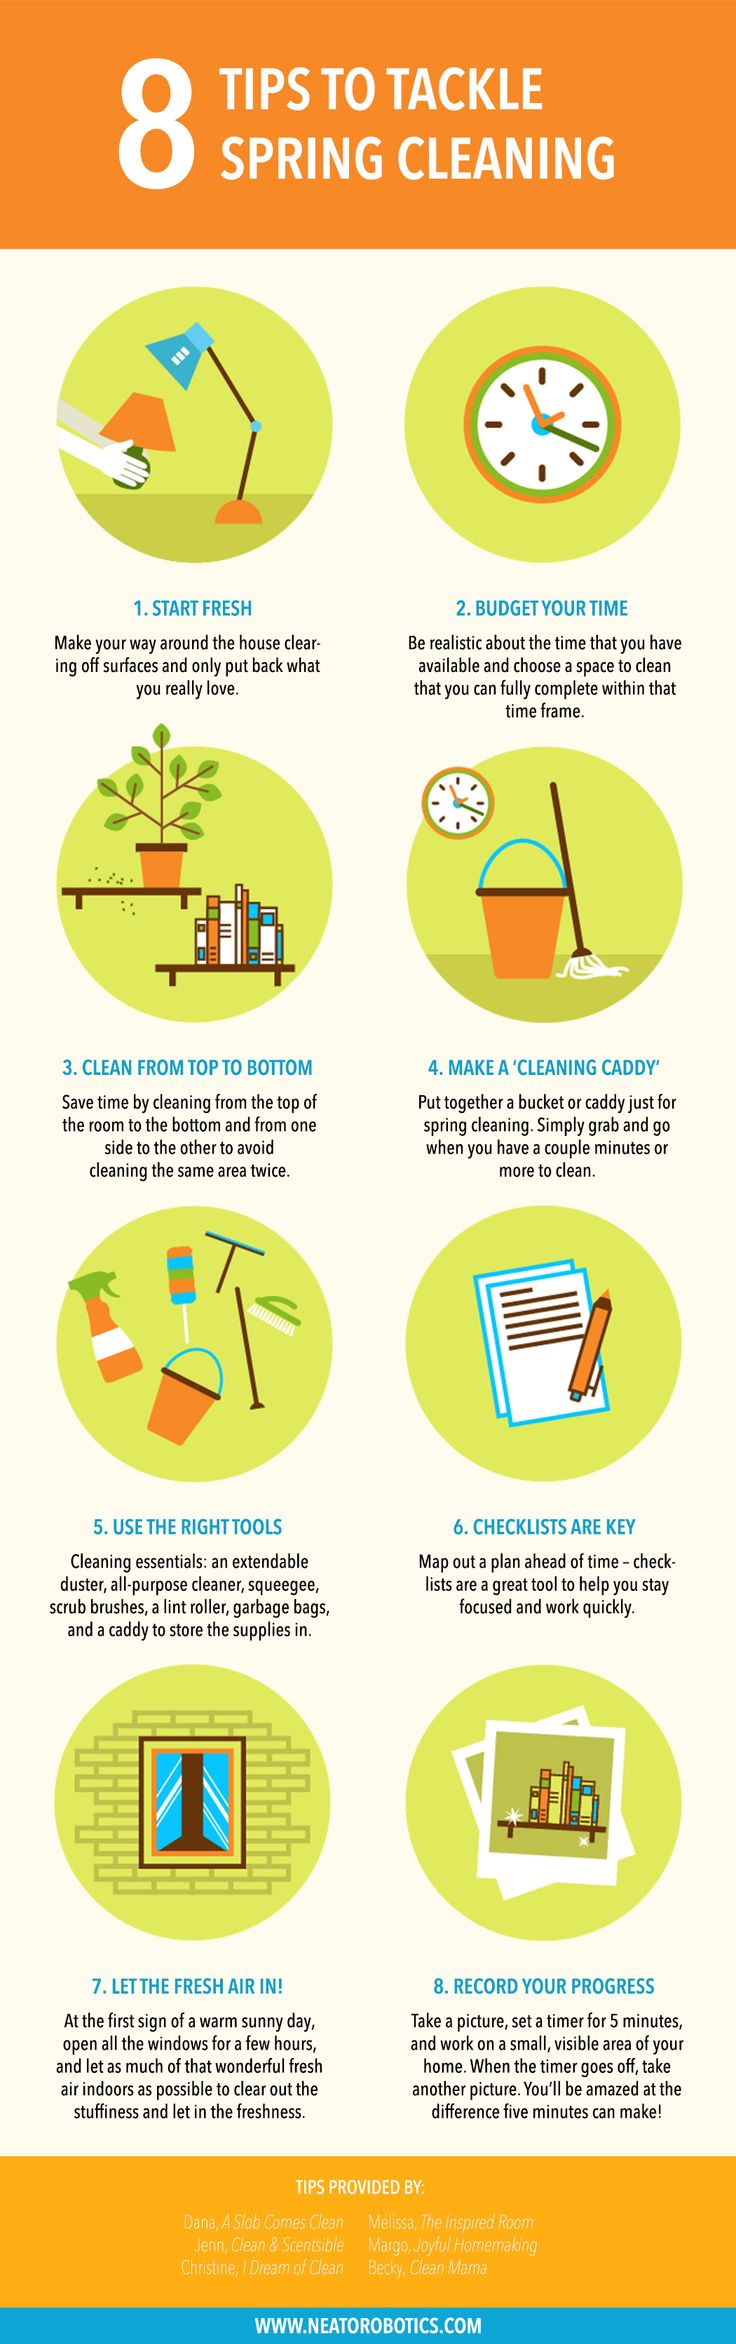 Freshen Up Your Home To Prepare For The Long, Hot Summer Months With These Easy  Steps. Spring Cleaning Doesnu0027t Have To Be Hard ... Ideas